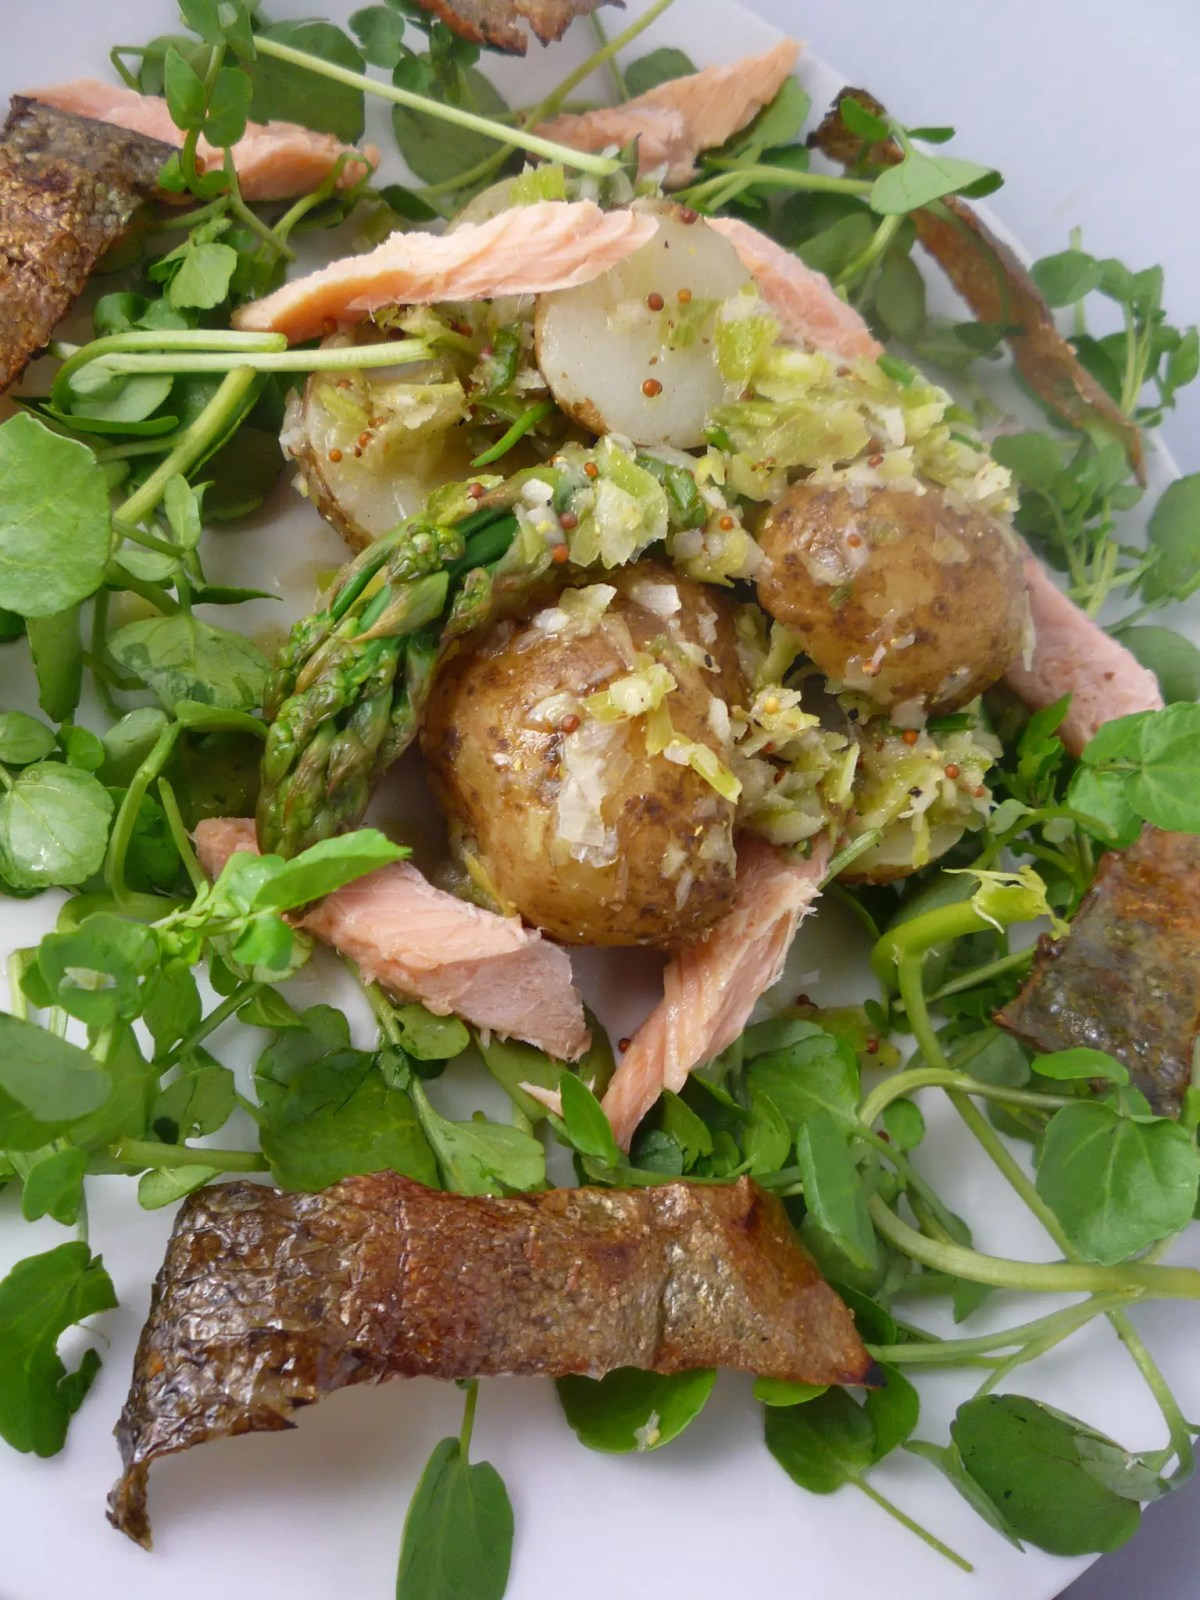 Smoked Trout Salad with Crispy Skin - photo by Beck under CC BY 2.0